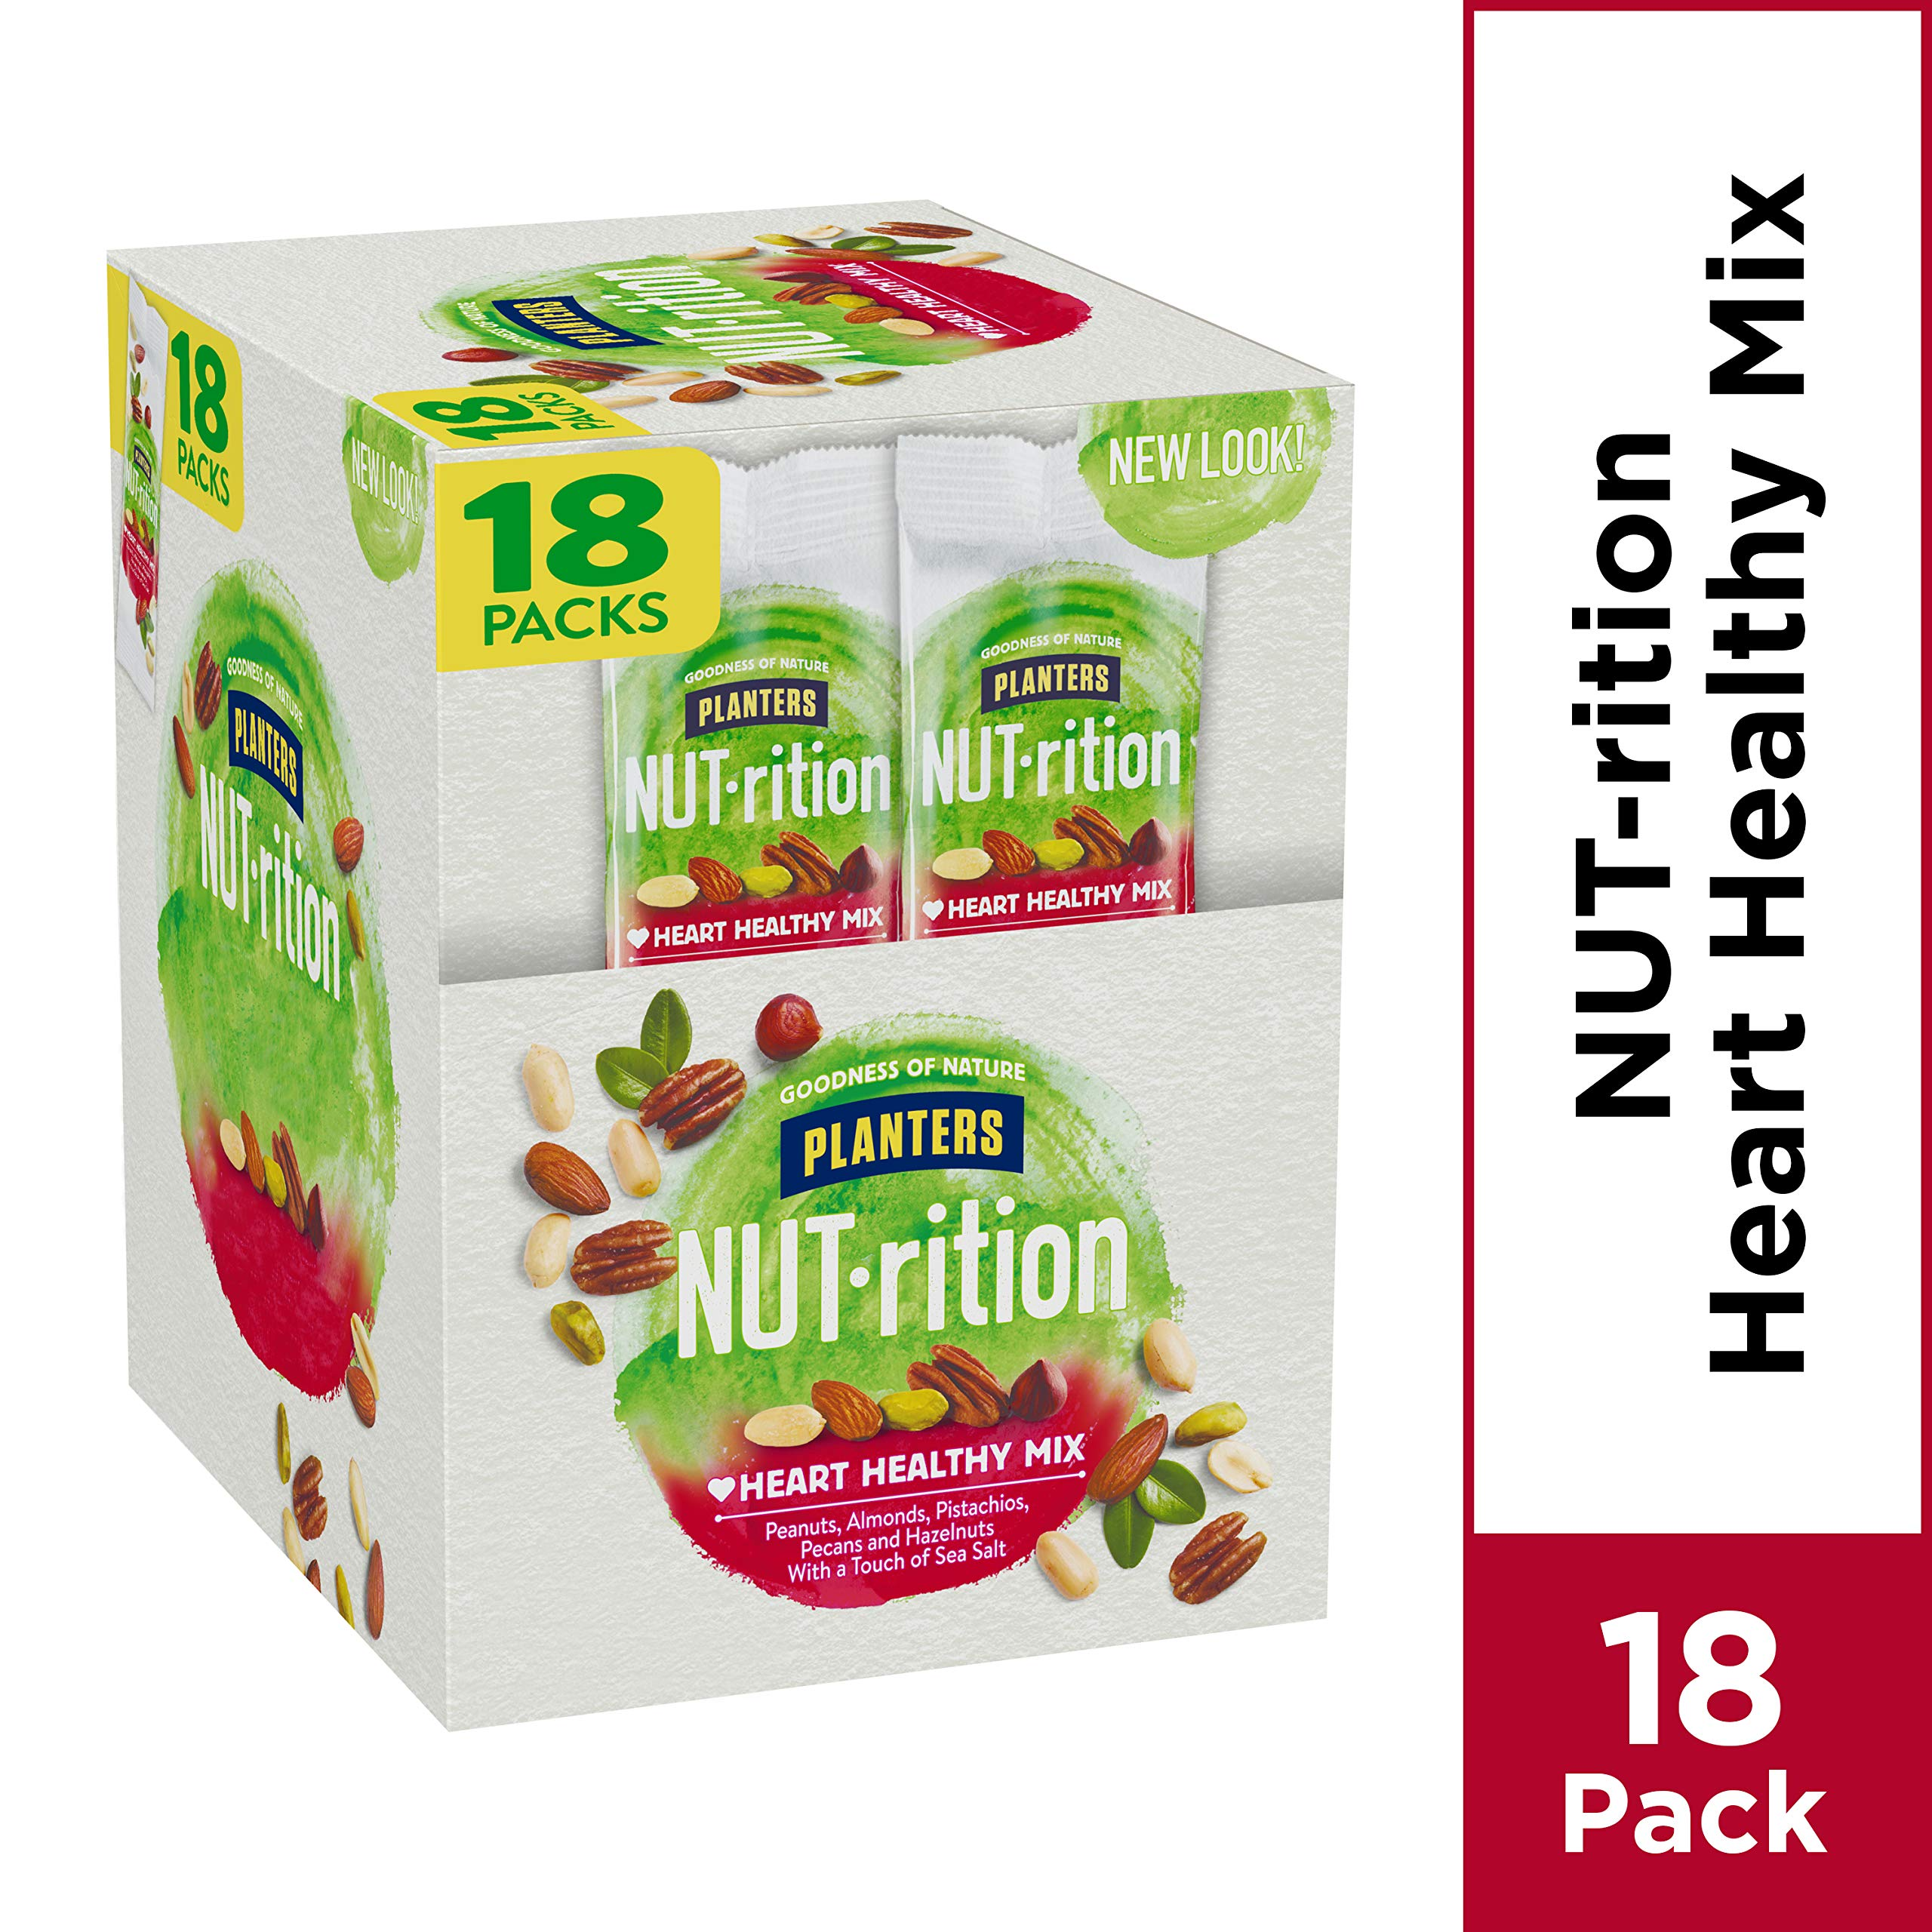 NUTrition Heart Healthy Nut Mix (1.5 oz Bags, Pack of 18) by Planters (Image #4)